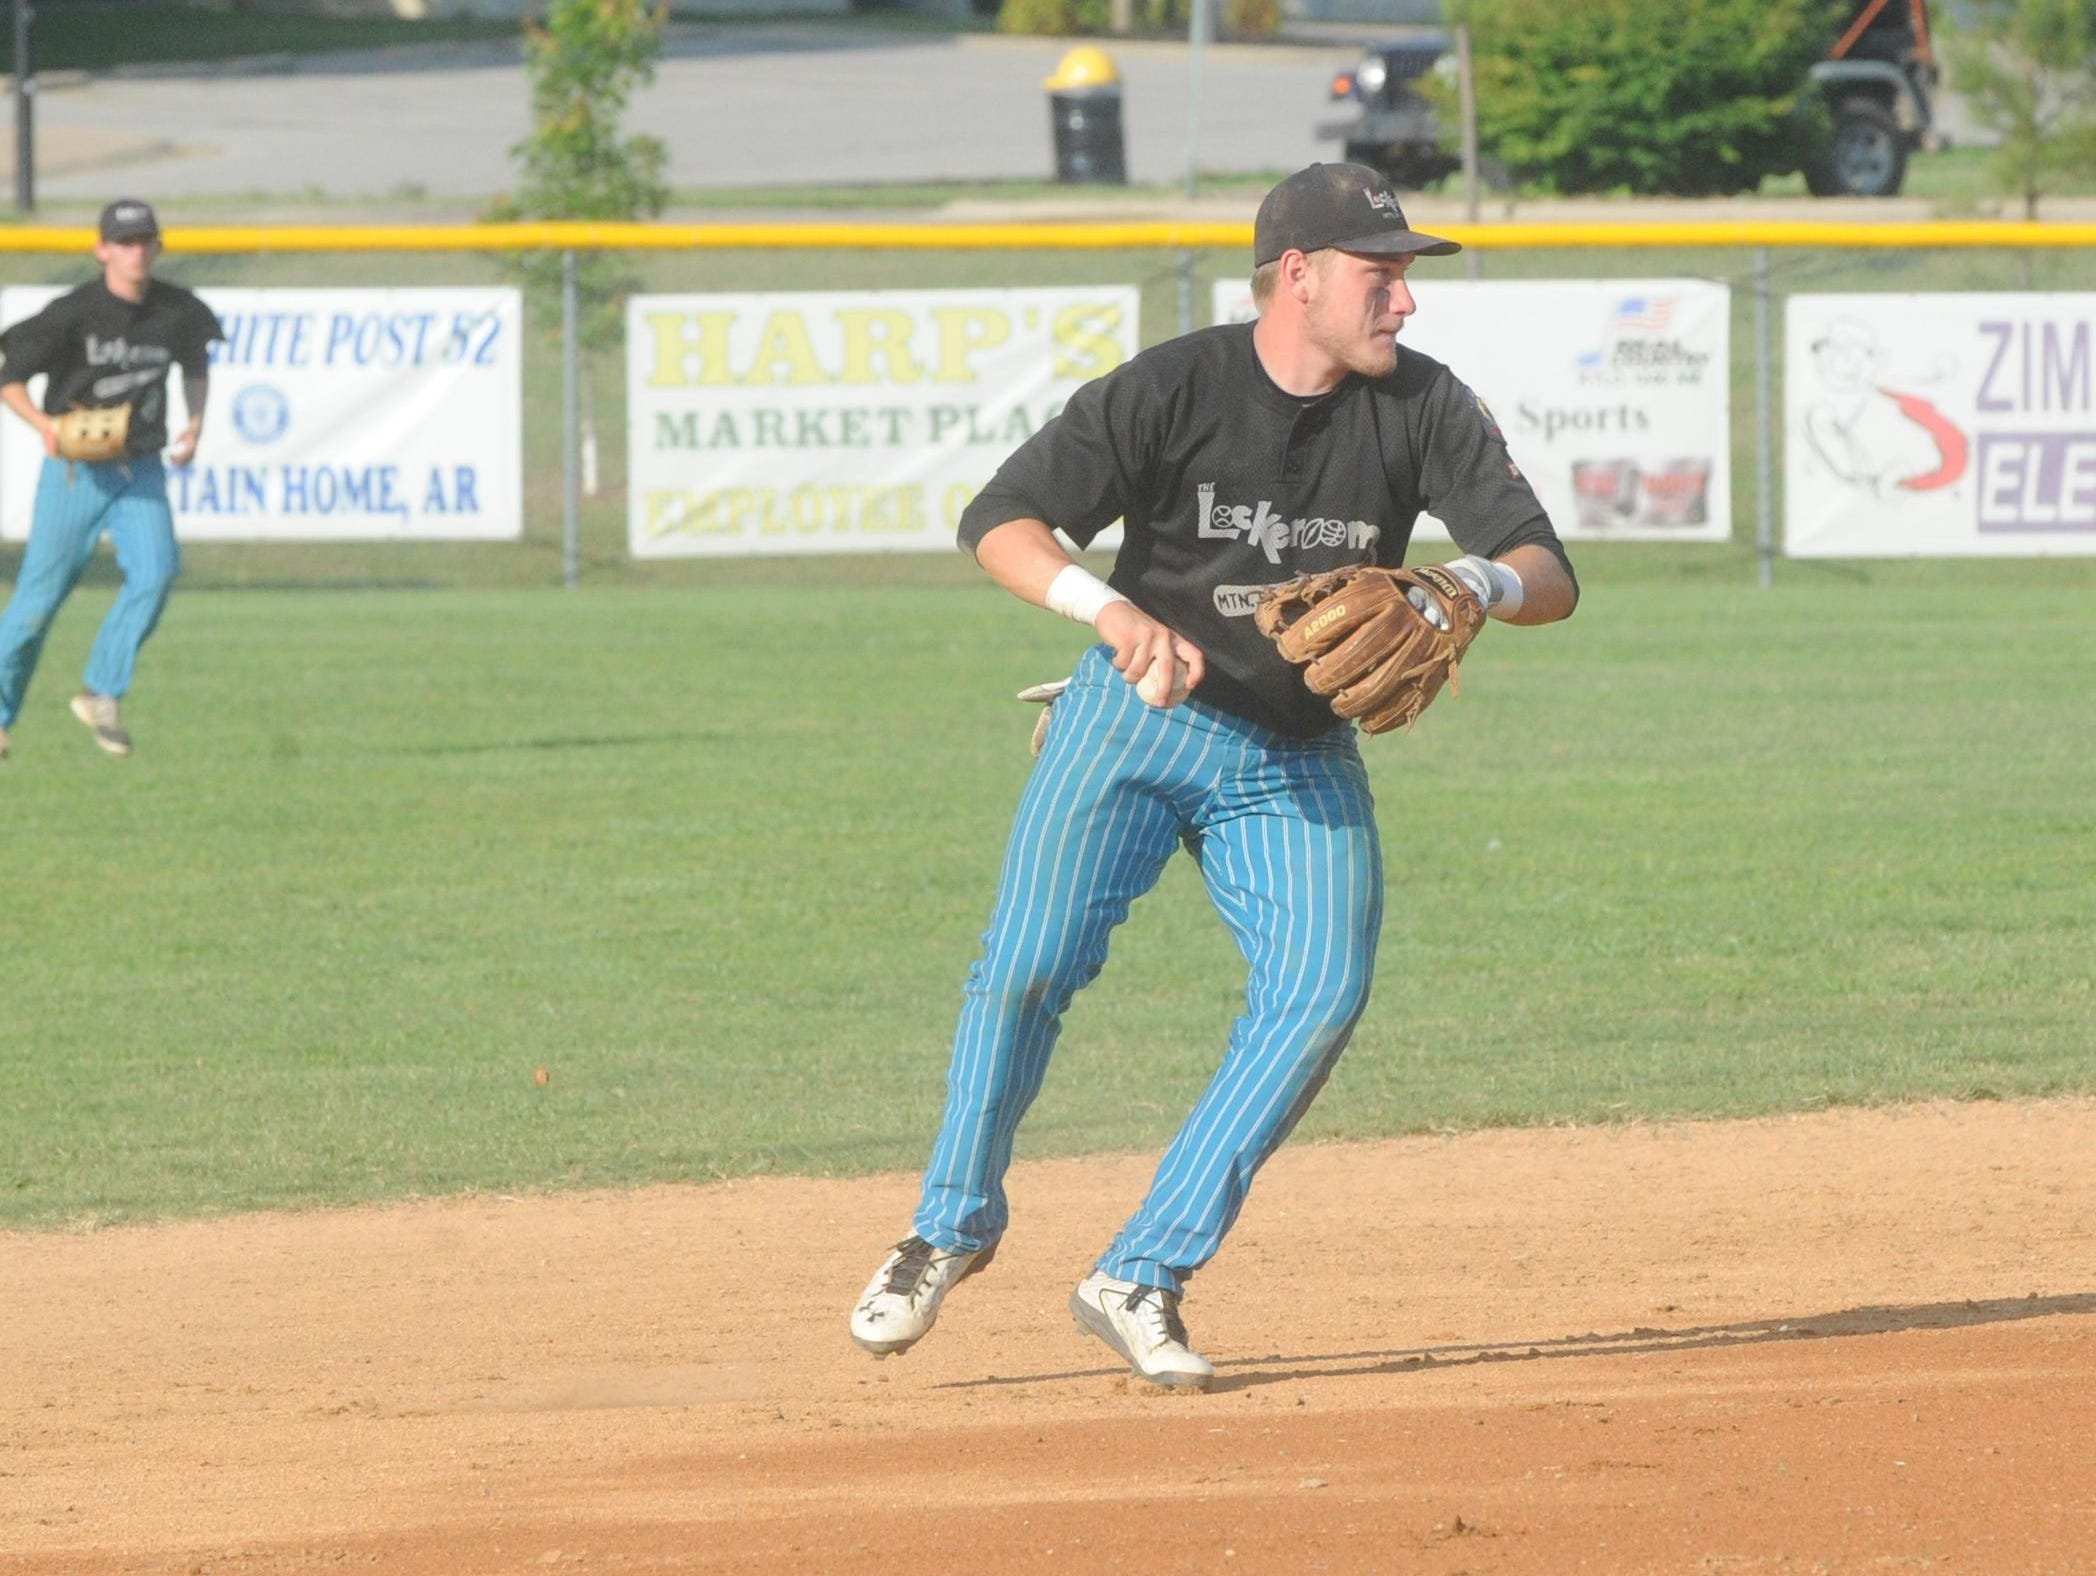 Lockeroom shortstop Hayden Hall fields a grounder and prepares to throw to first base during a game earlier this season at Cooper Park. Hall will play college baseball at Northeastern Oklahoma A&M College in Miami, Okla.